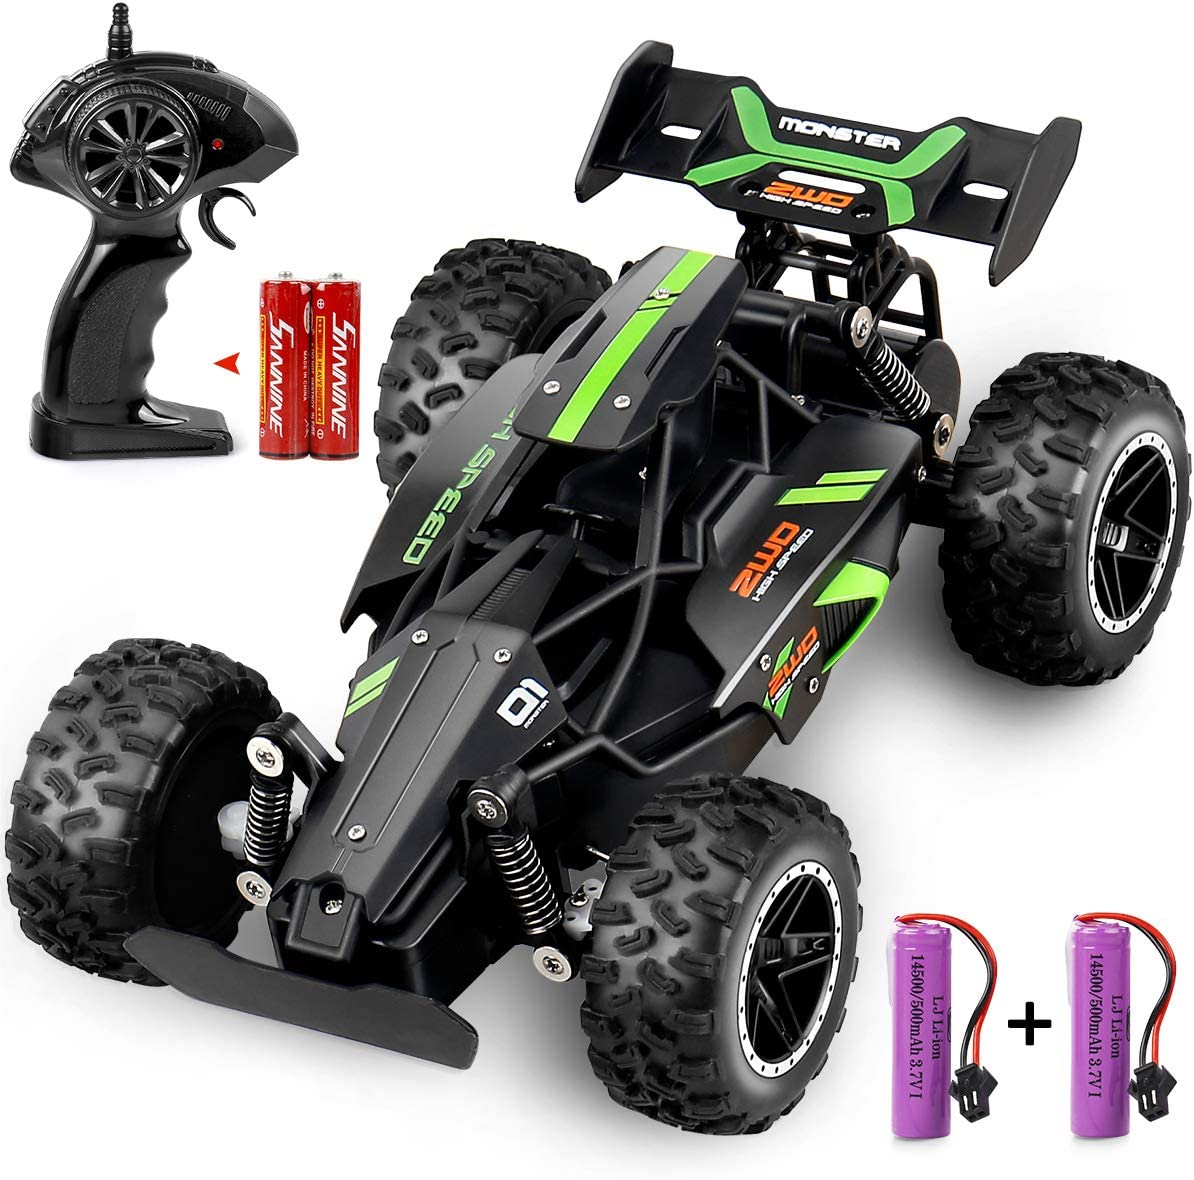 Amazon Com Outerman All Terrain Rc Cars Electric Remote Control Truck 15 20 Km H Monster Vehicle High Speed Rc Toy For Teens Adults And Boys Kids With 2 Lithium Rechargeable Batteries New 1 18 Scale 2 4ghz